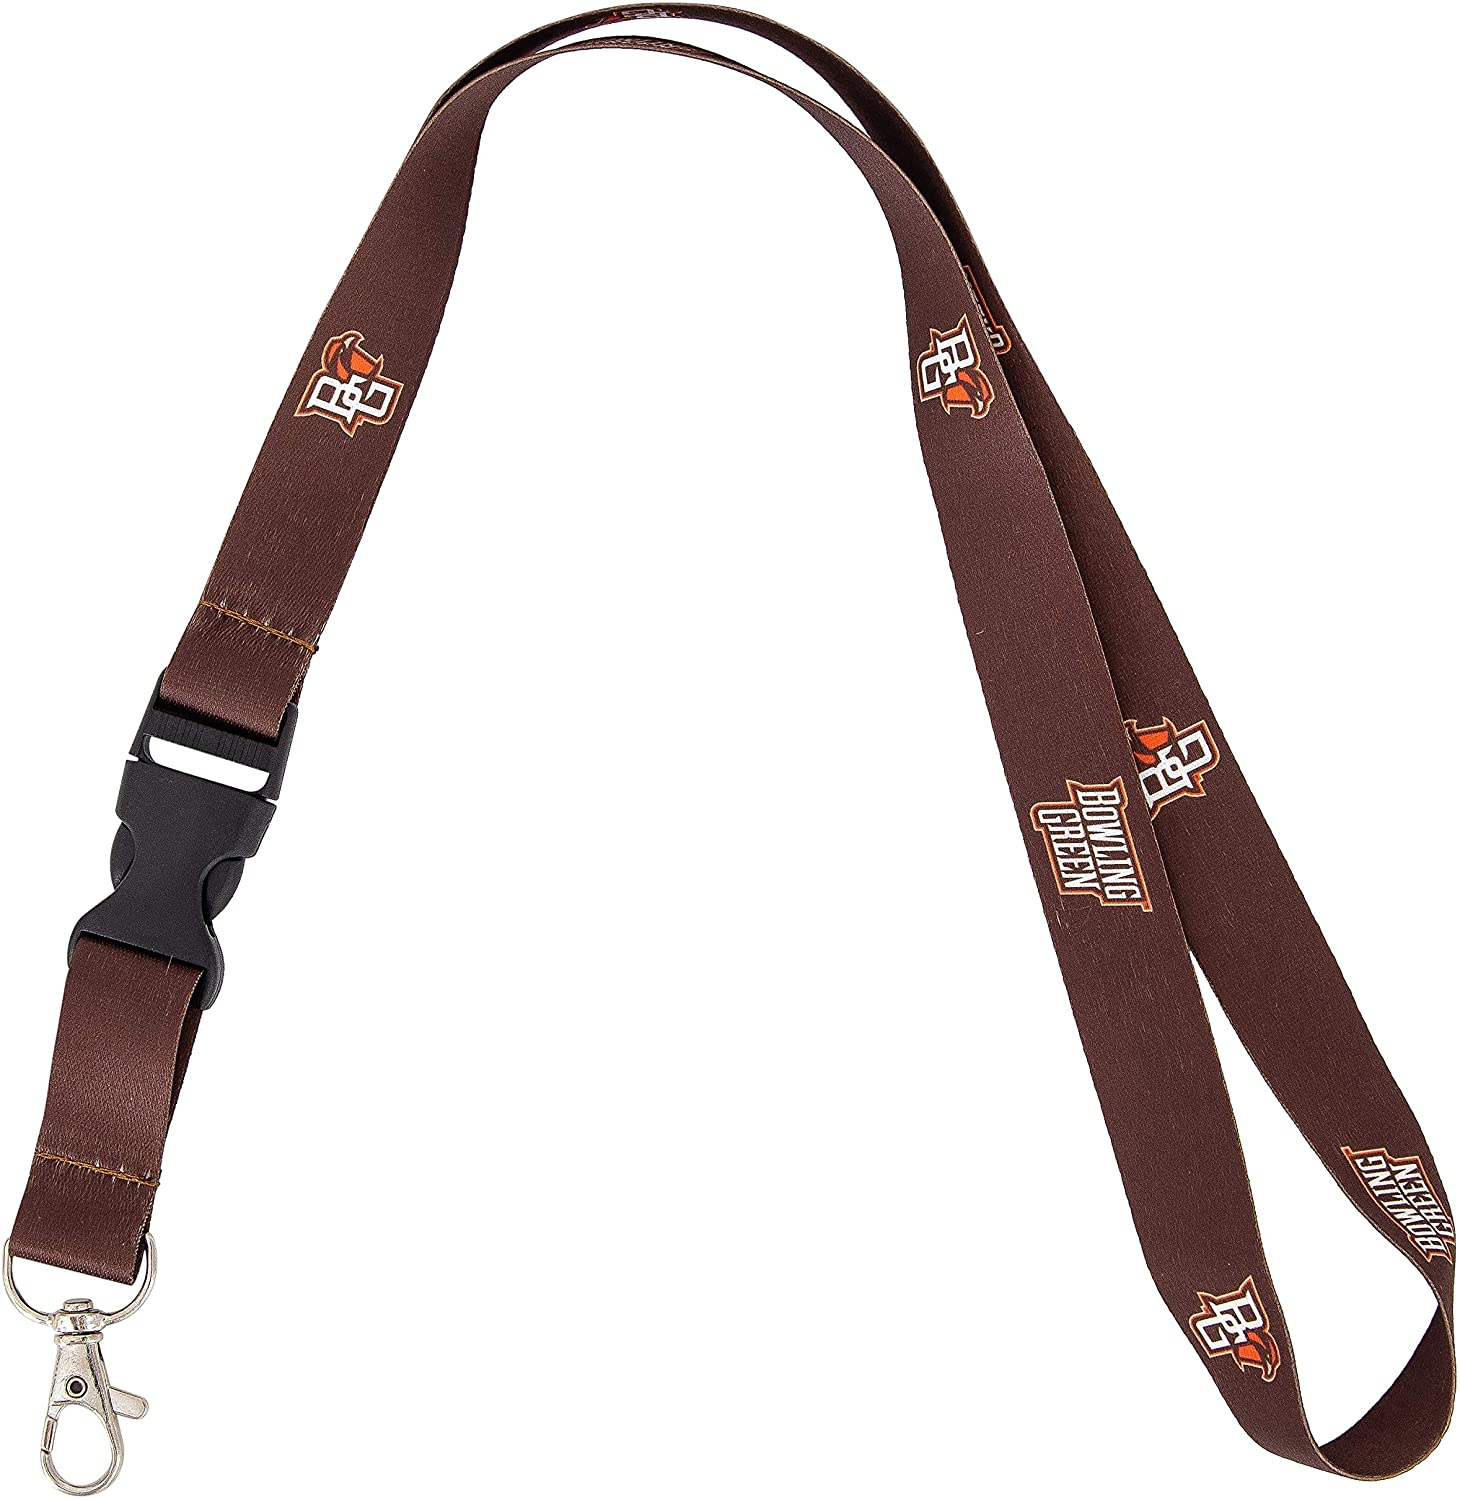 Printed Contractor Lanyard Safety Breakaway Neck Strap /& Blue ID Card Holder X 1 for sale online